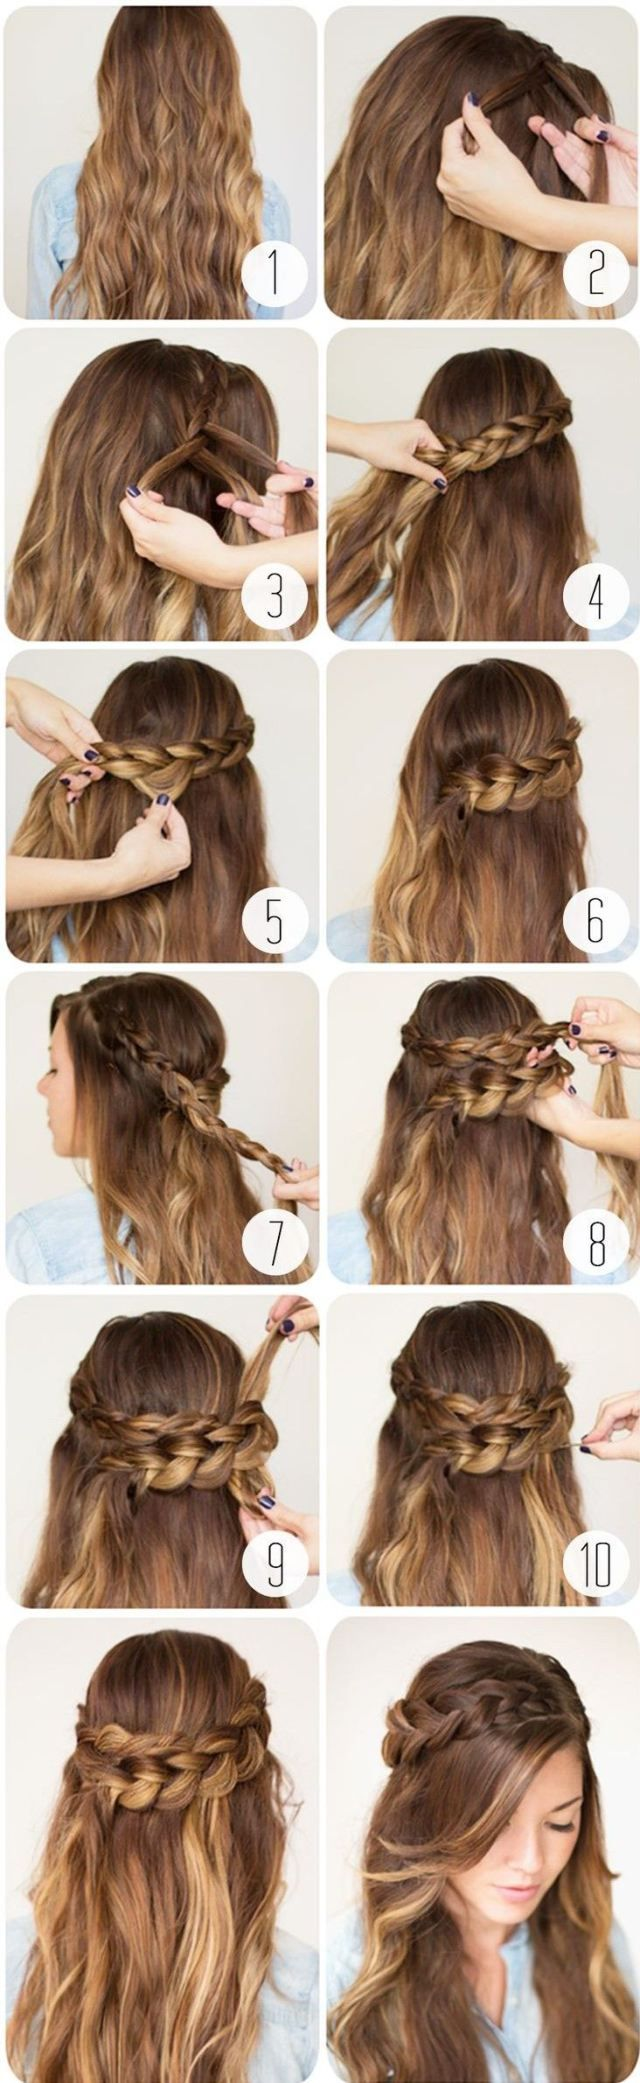 Pin by barbi on haj pinterest easy braided hairstyles braid